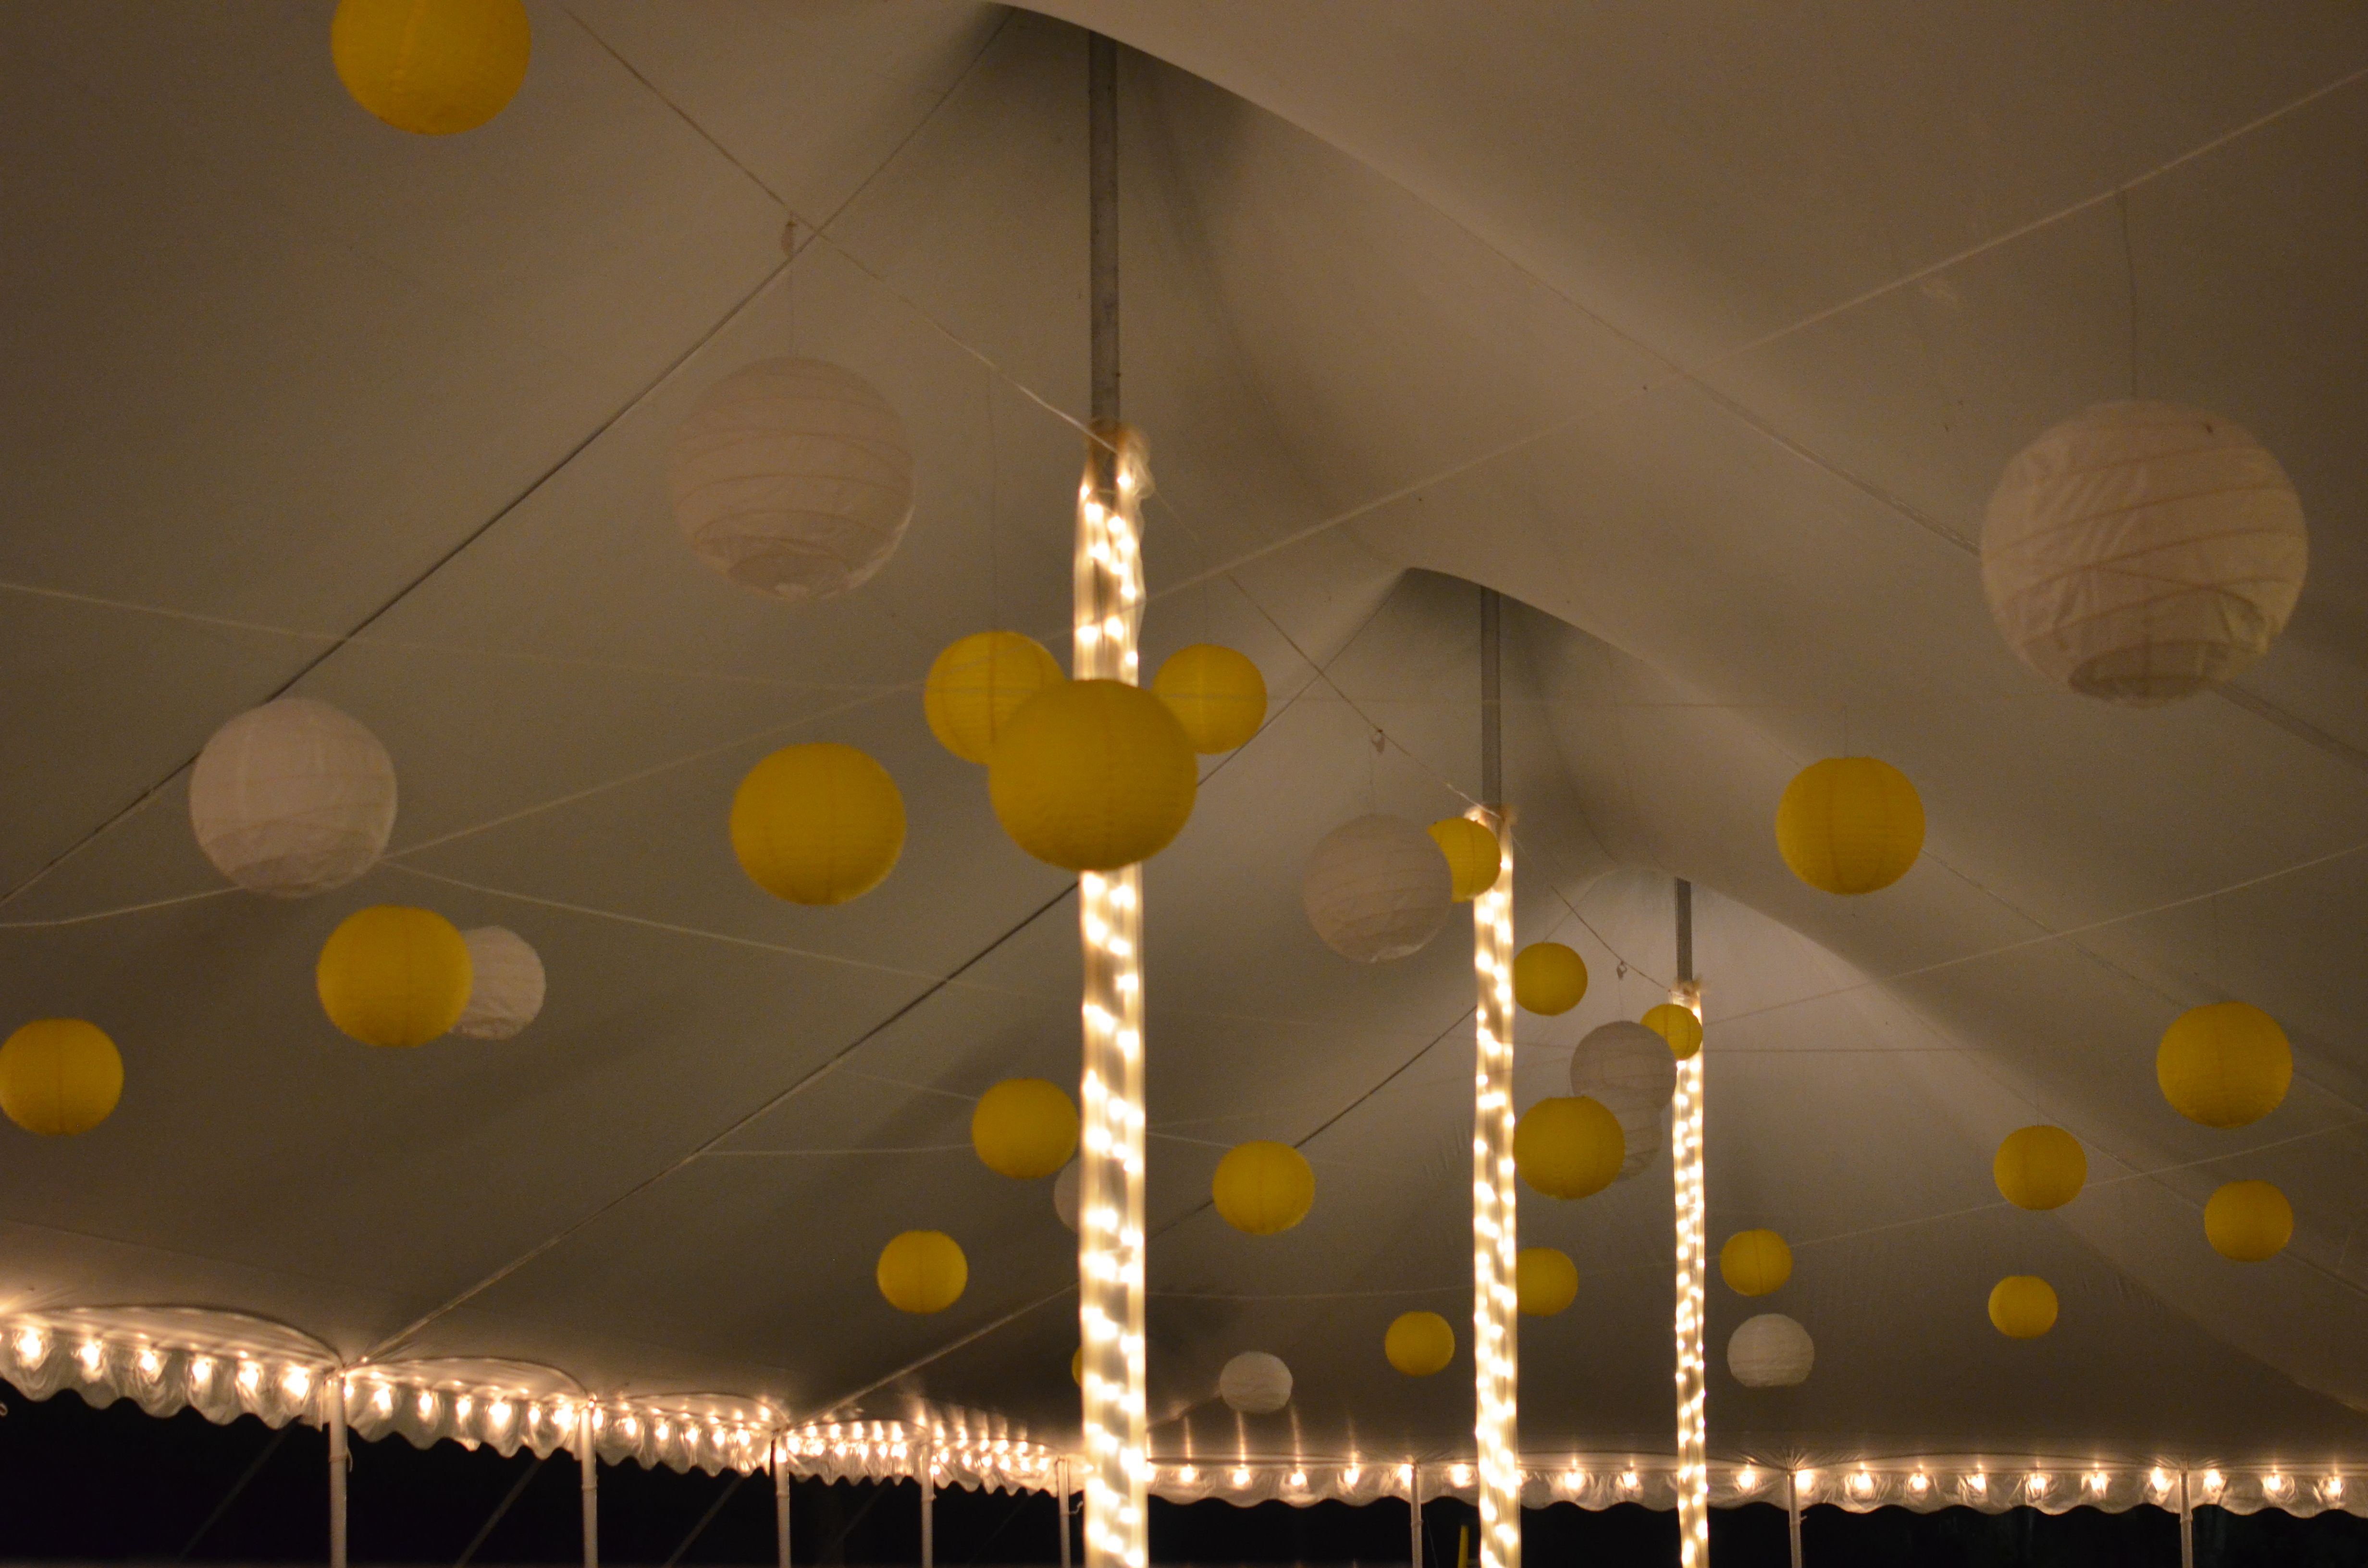 Wedding decorations tulle and lights  The tent was decorated with white and yellow paper lanterns The